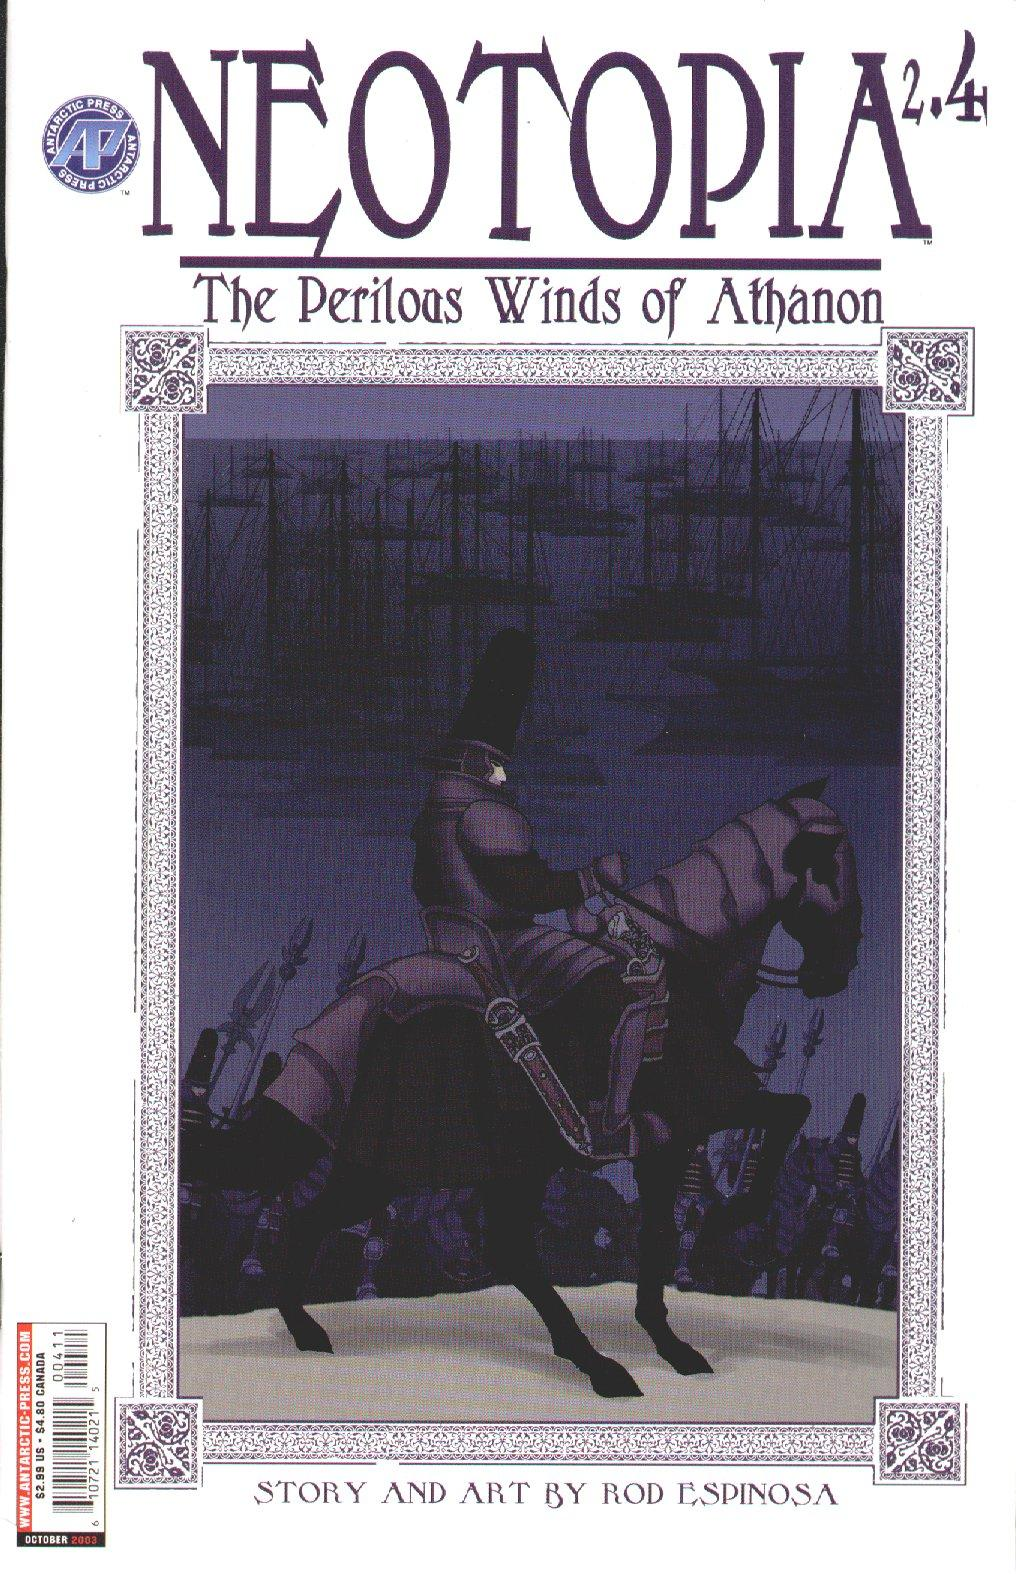 Neotopia v2-The Perilous Winds of Athanon 001-005 2003 Neotopia v2 04 2003 nuther